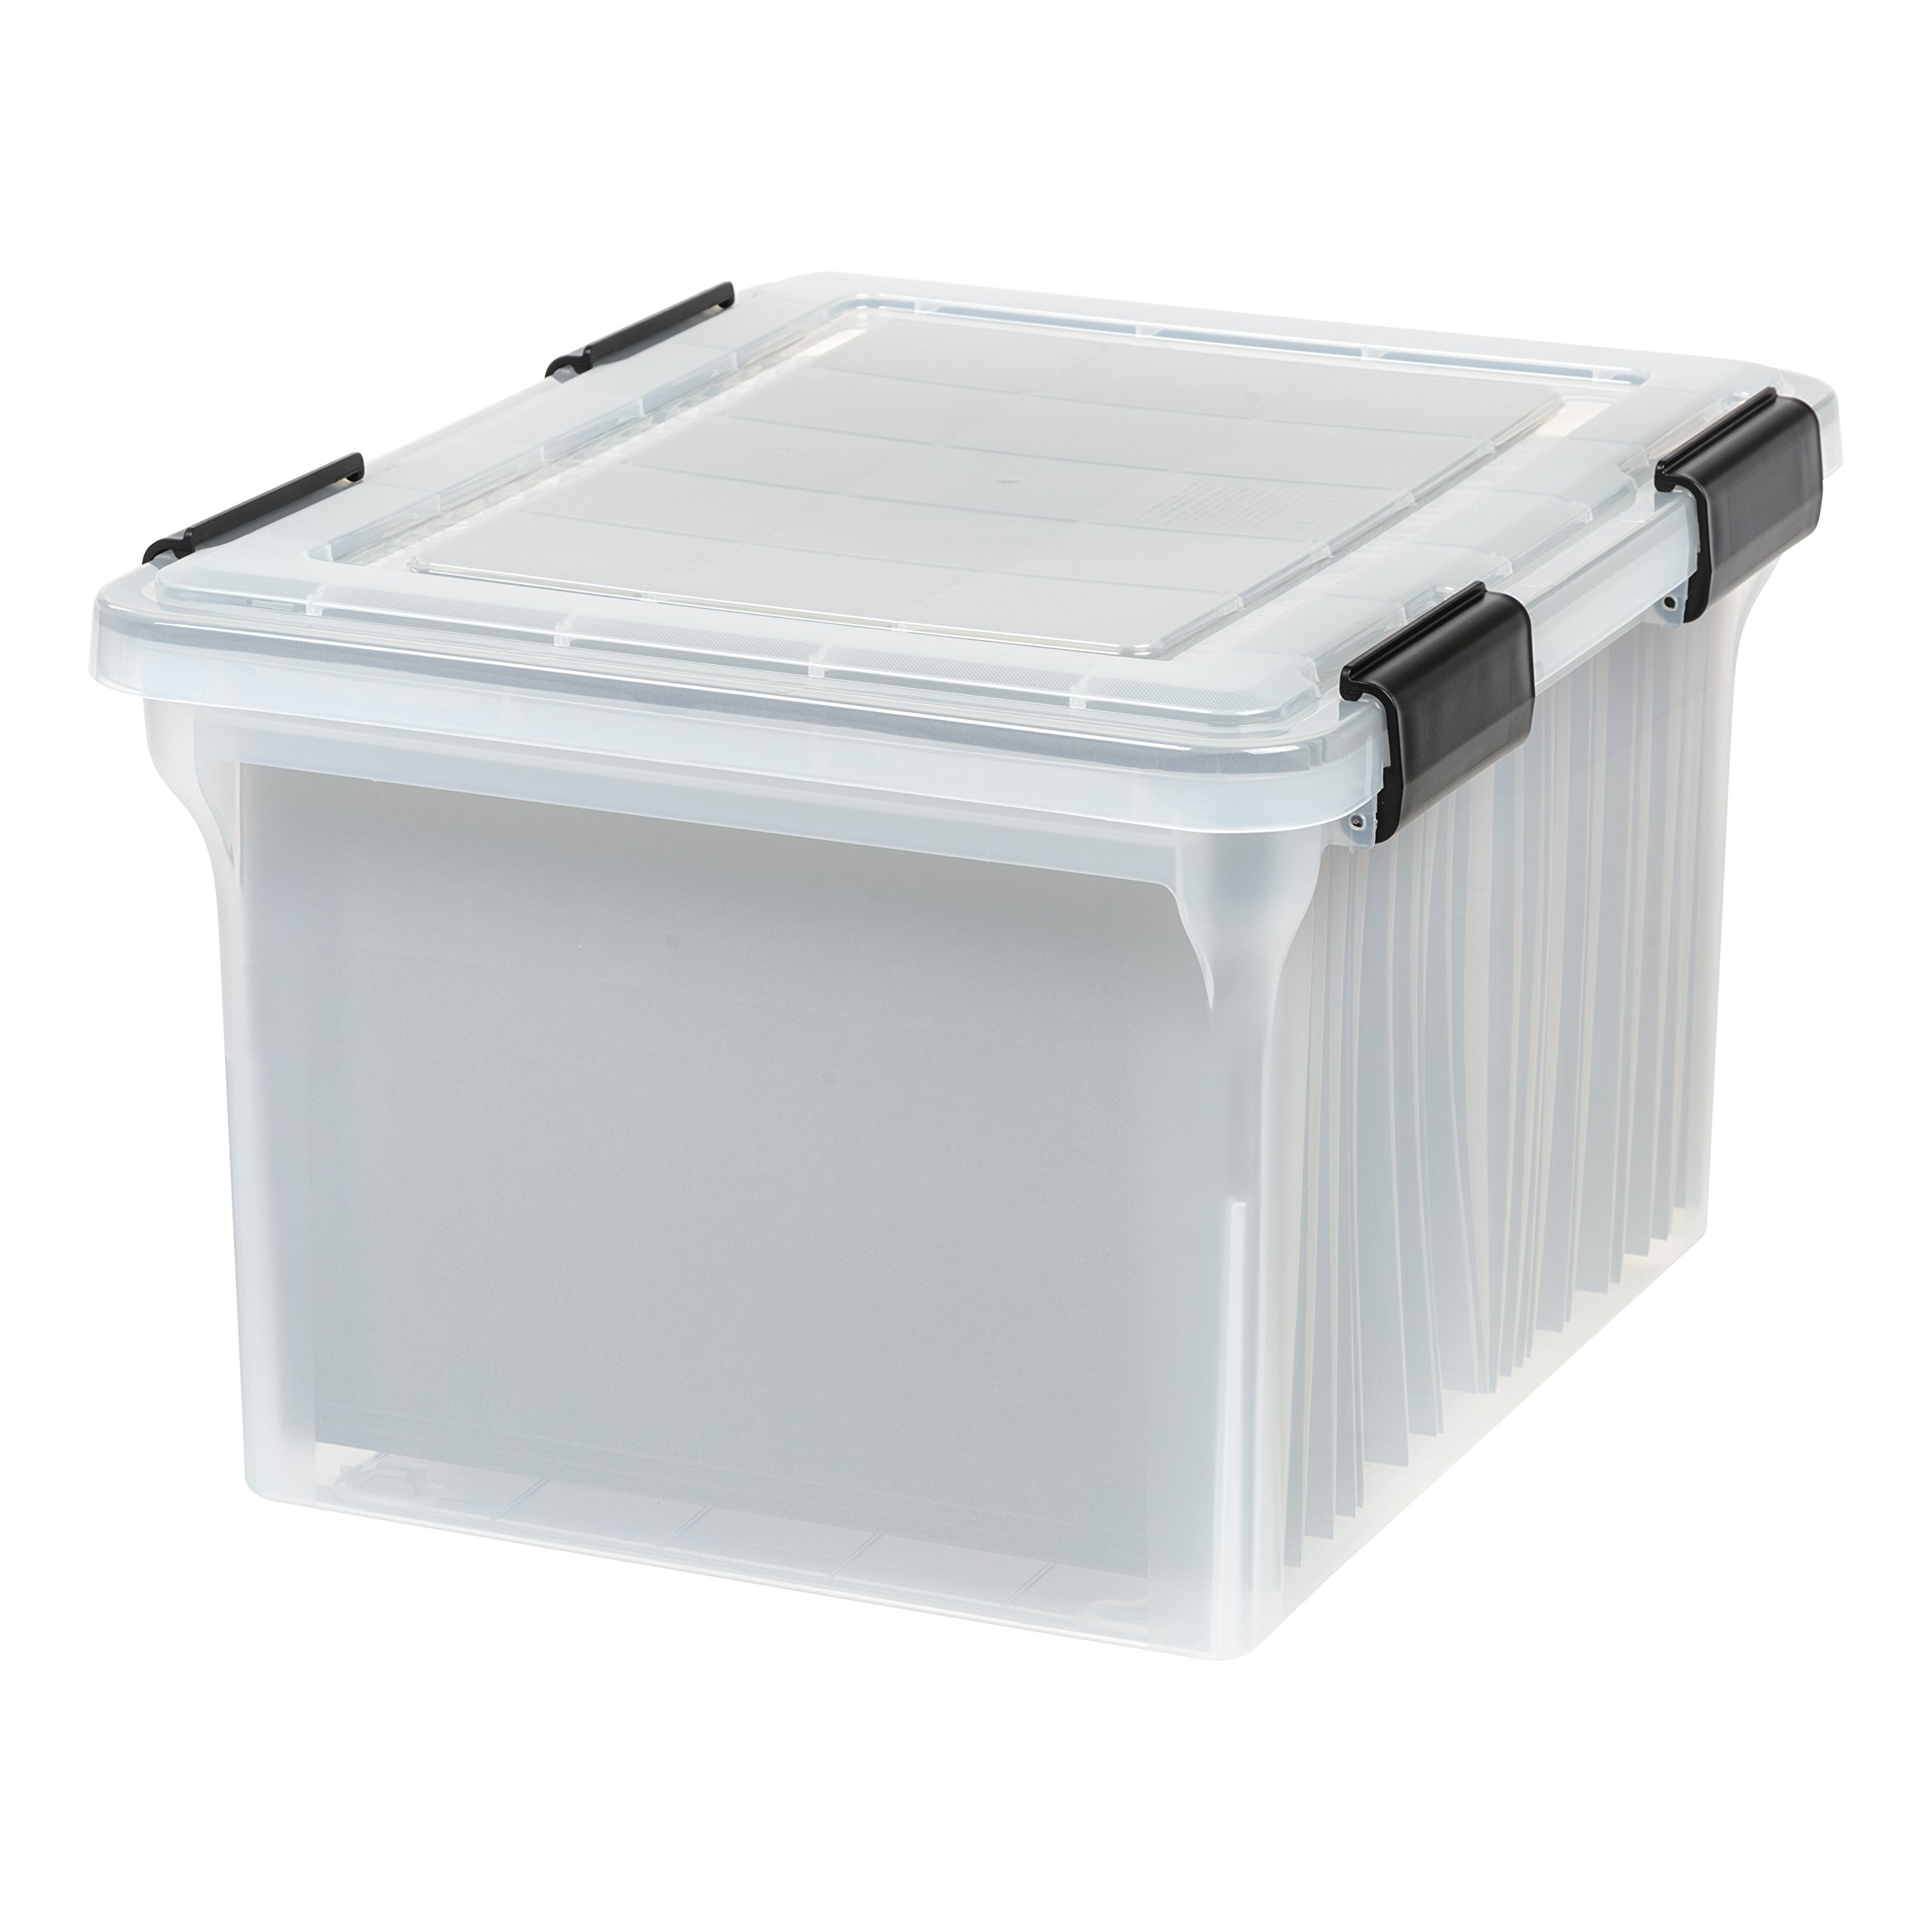 IRIS Letter and Legal Size WEATHERTIGHT File Box, Clear by IRIS USA, Inc.